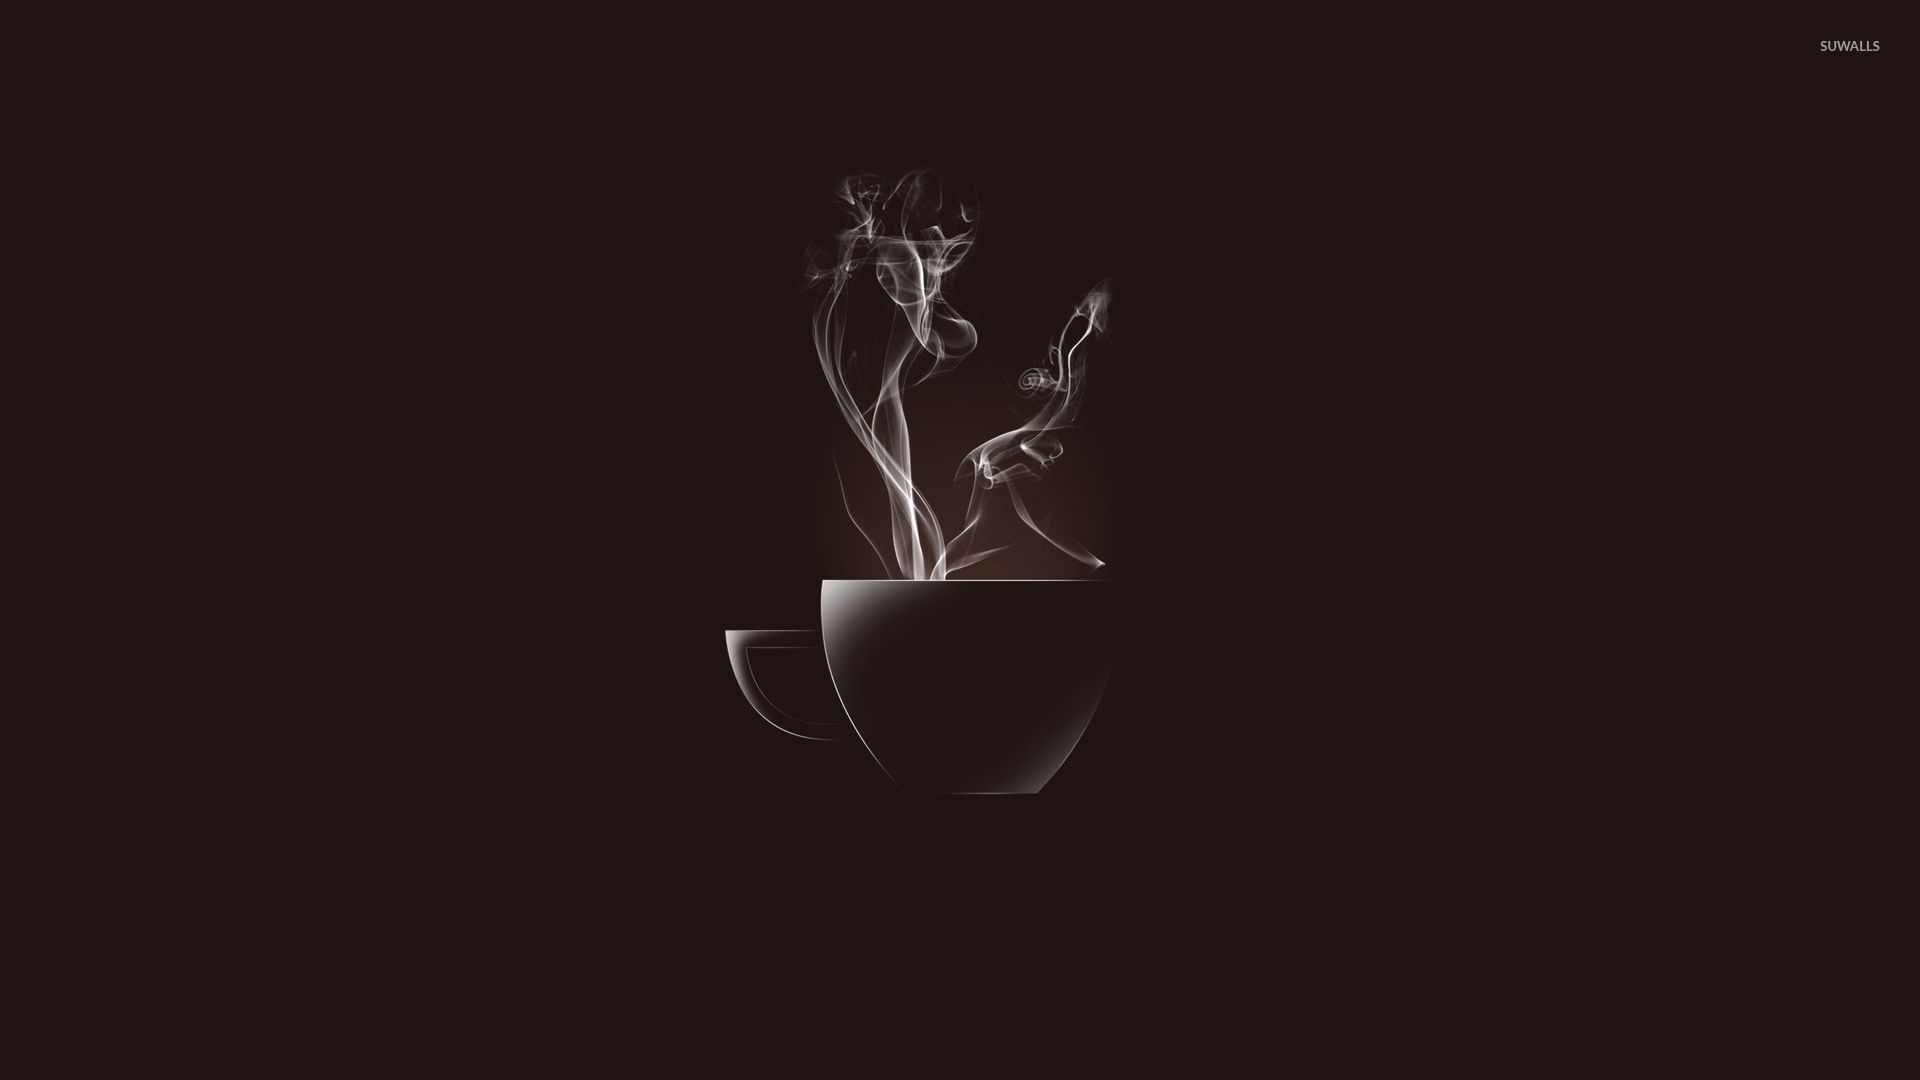 Hot coffee cup wallpaper   Minimalistic wallpapers   53505 1920x1080